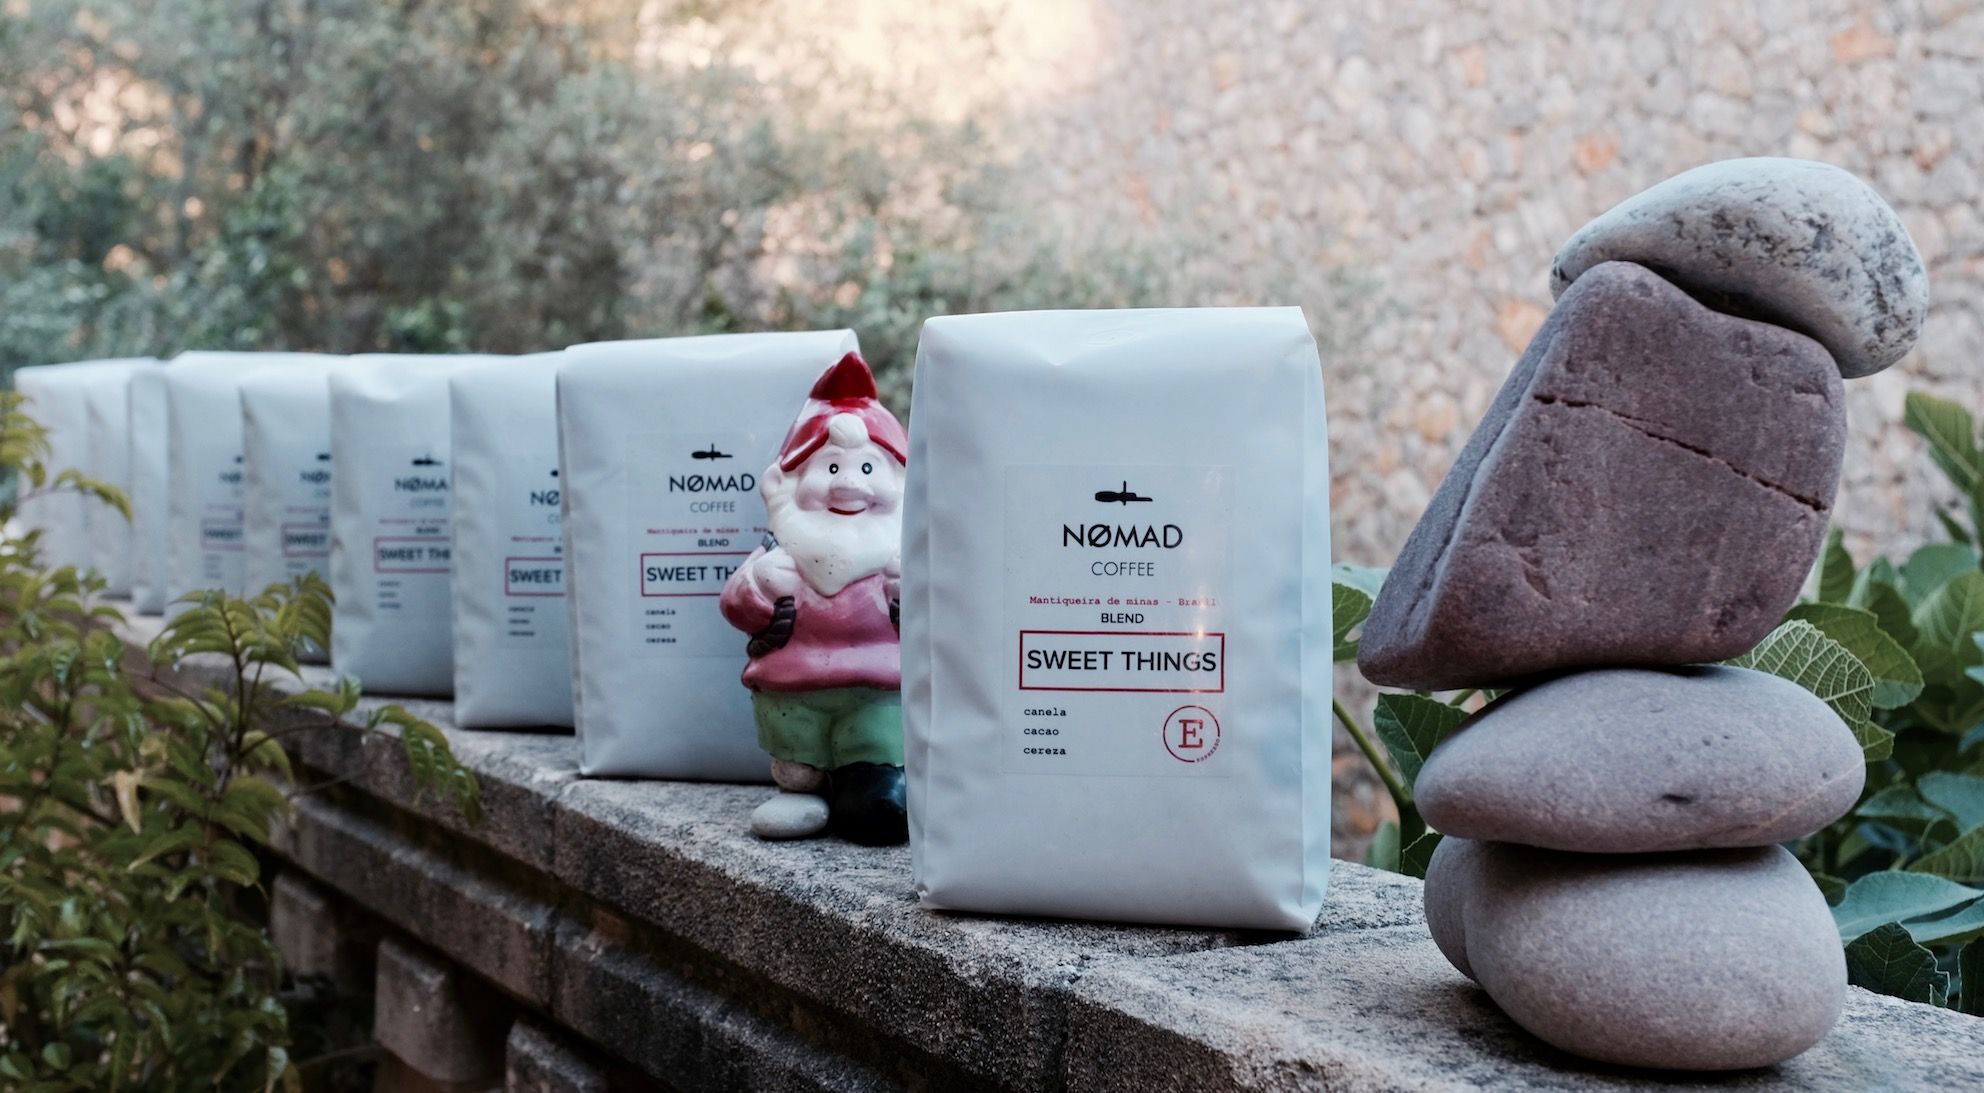 Try SWEET THINGS coffee from Nømad at CAFE SOCIAL Mallorca